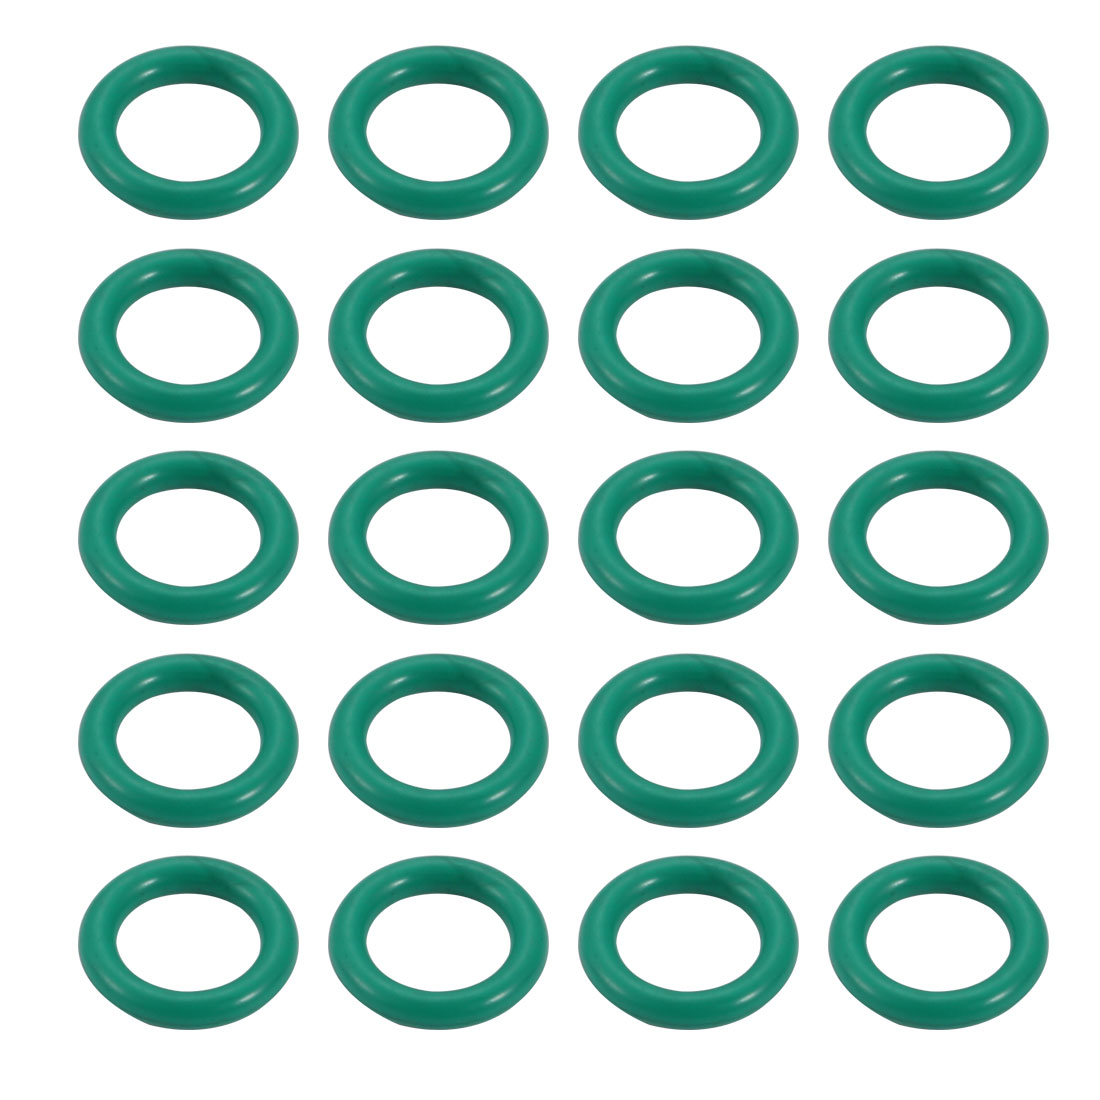 20pcs 8mm x 1.5mm Size Mechanical Rubber O Ring Oil Seal Gaskets Green